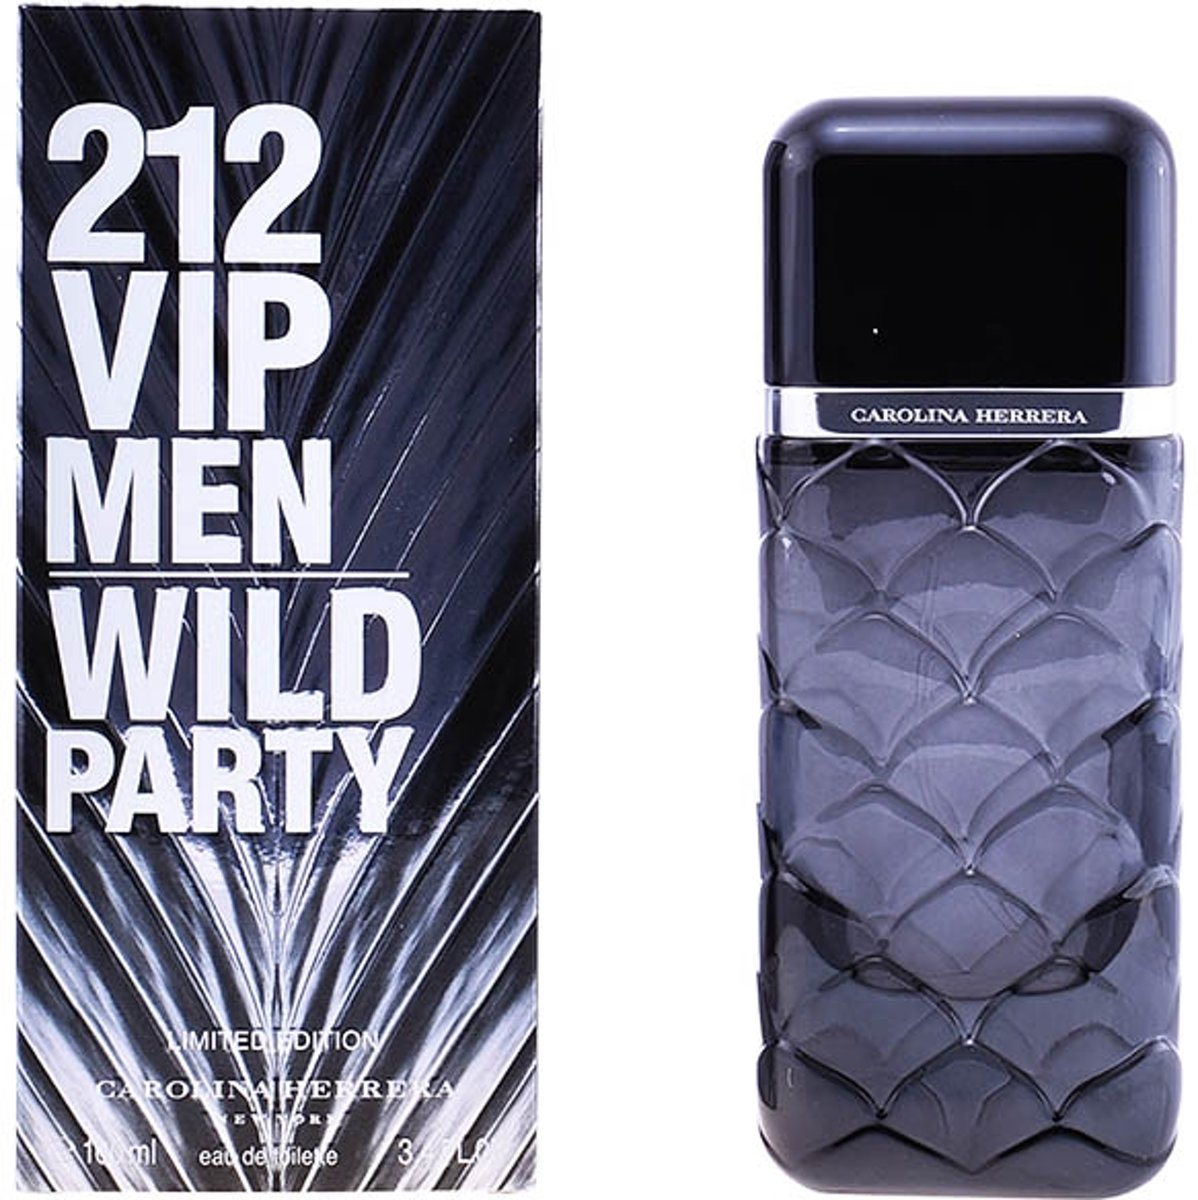 Carolina Herrera 212 VIP Men Wild Party - 100 ml - eau de toilette